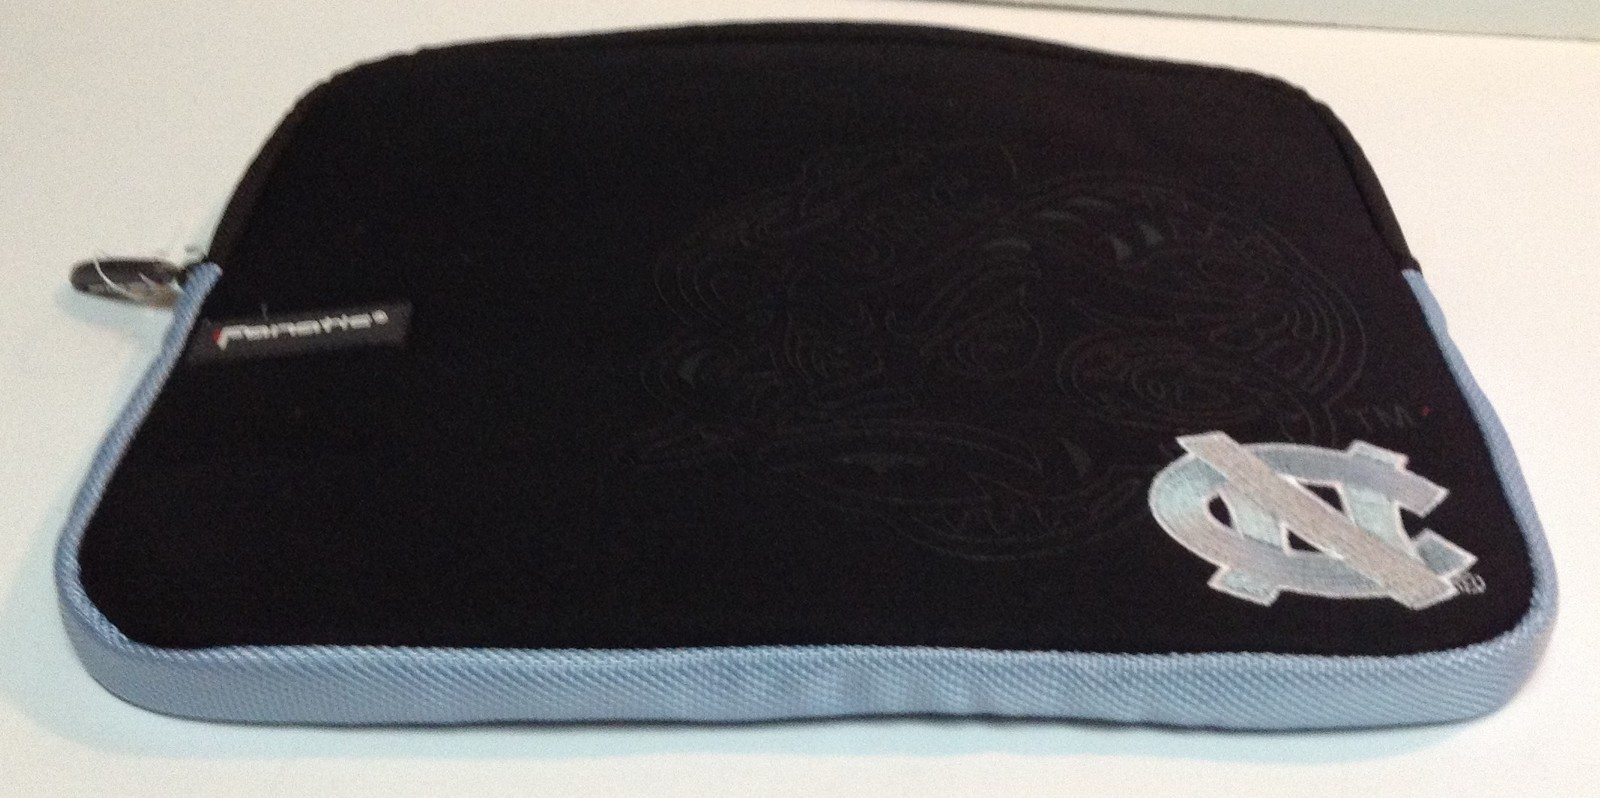 North Carolina University Tablet Ipad Laptop Protection Case by Fanatic NWT